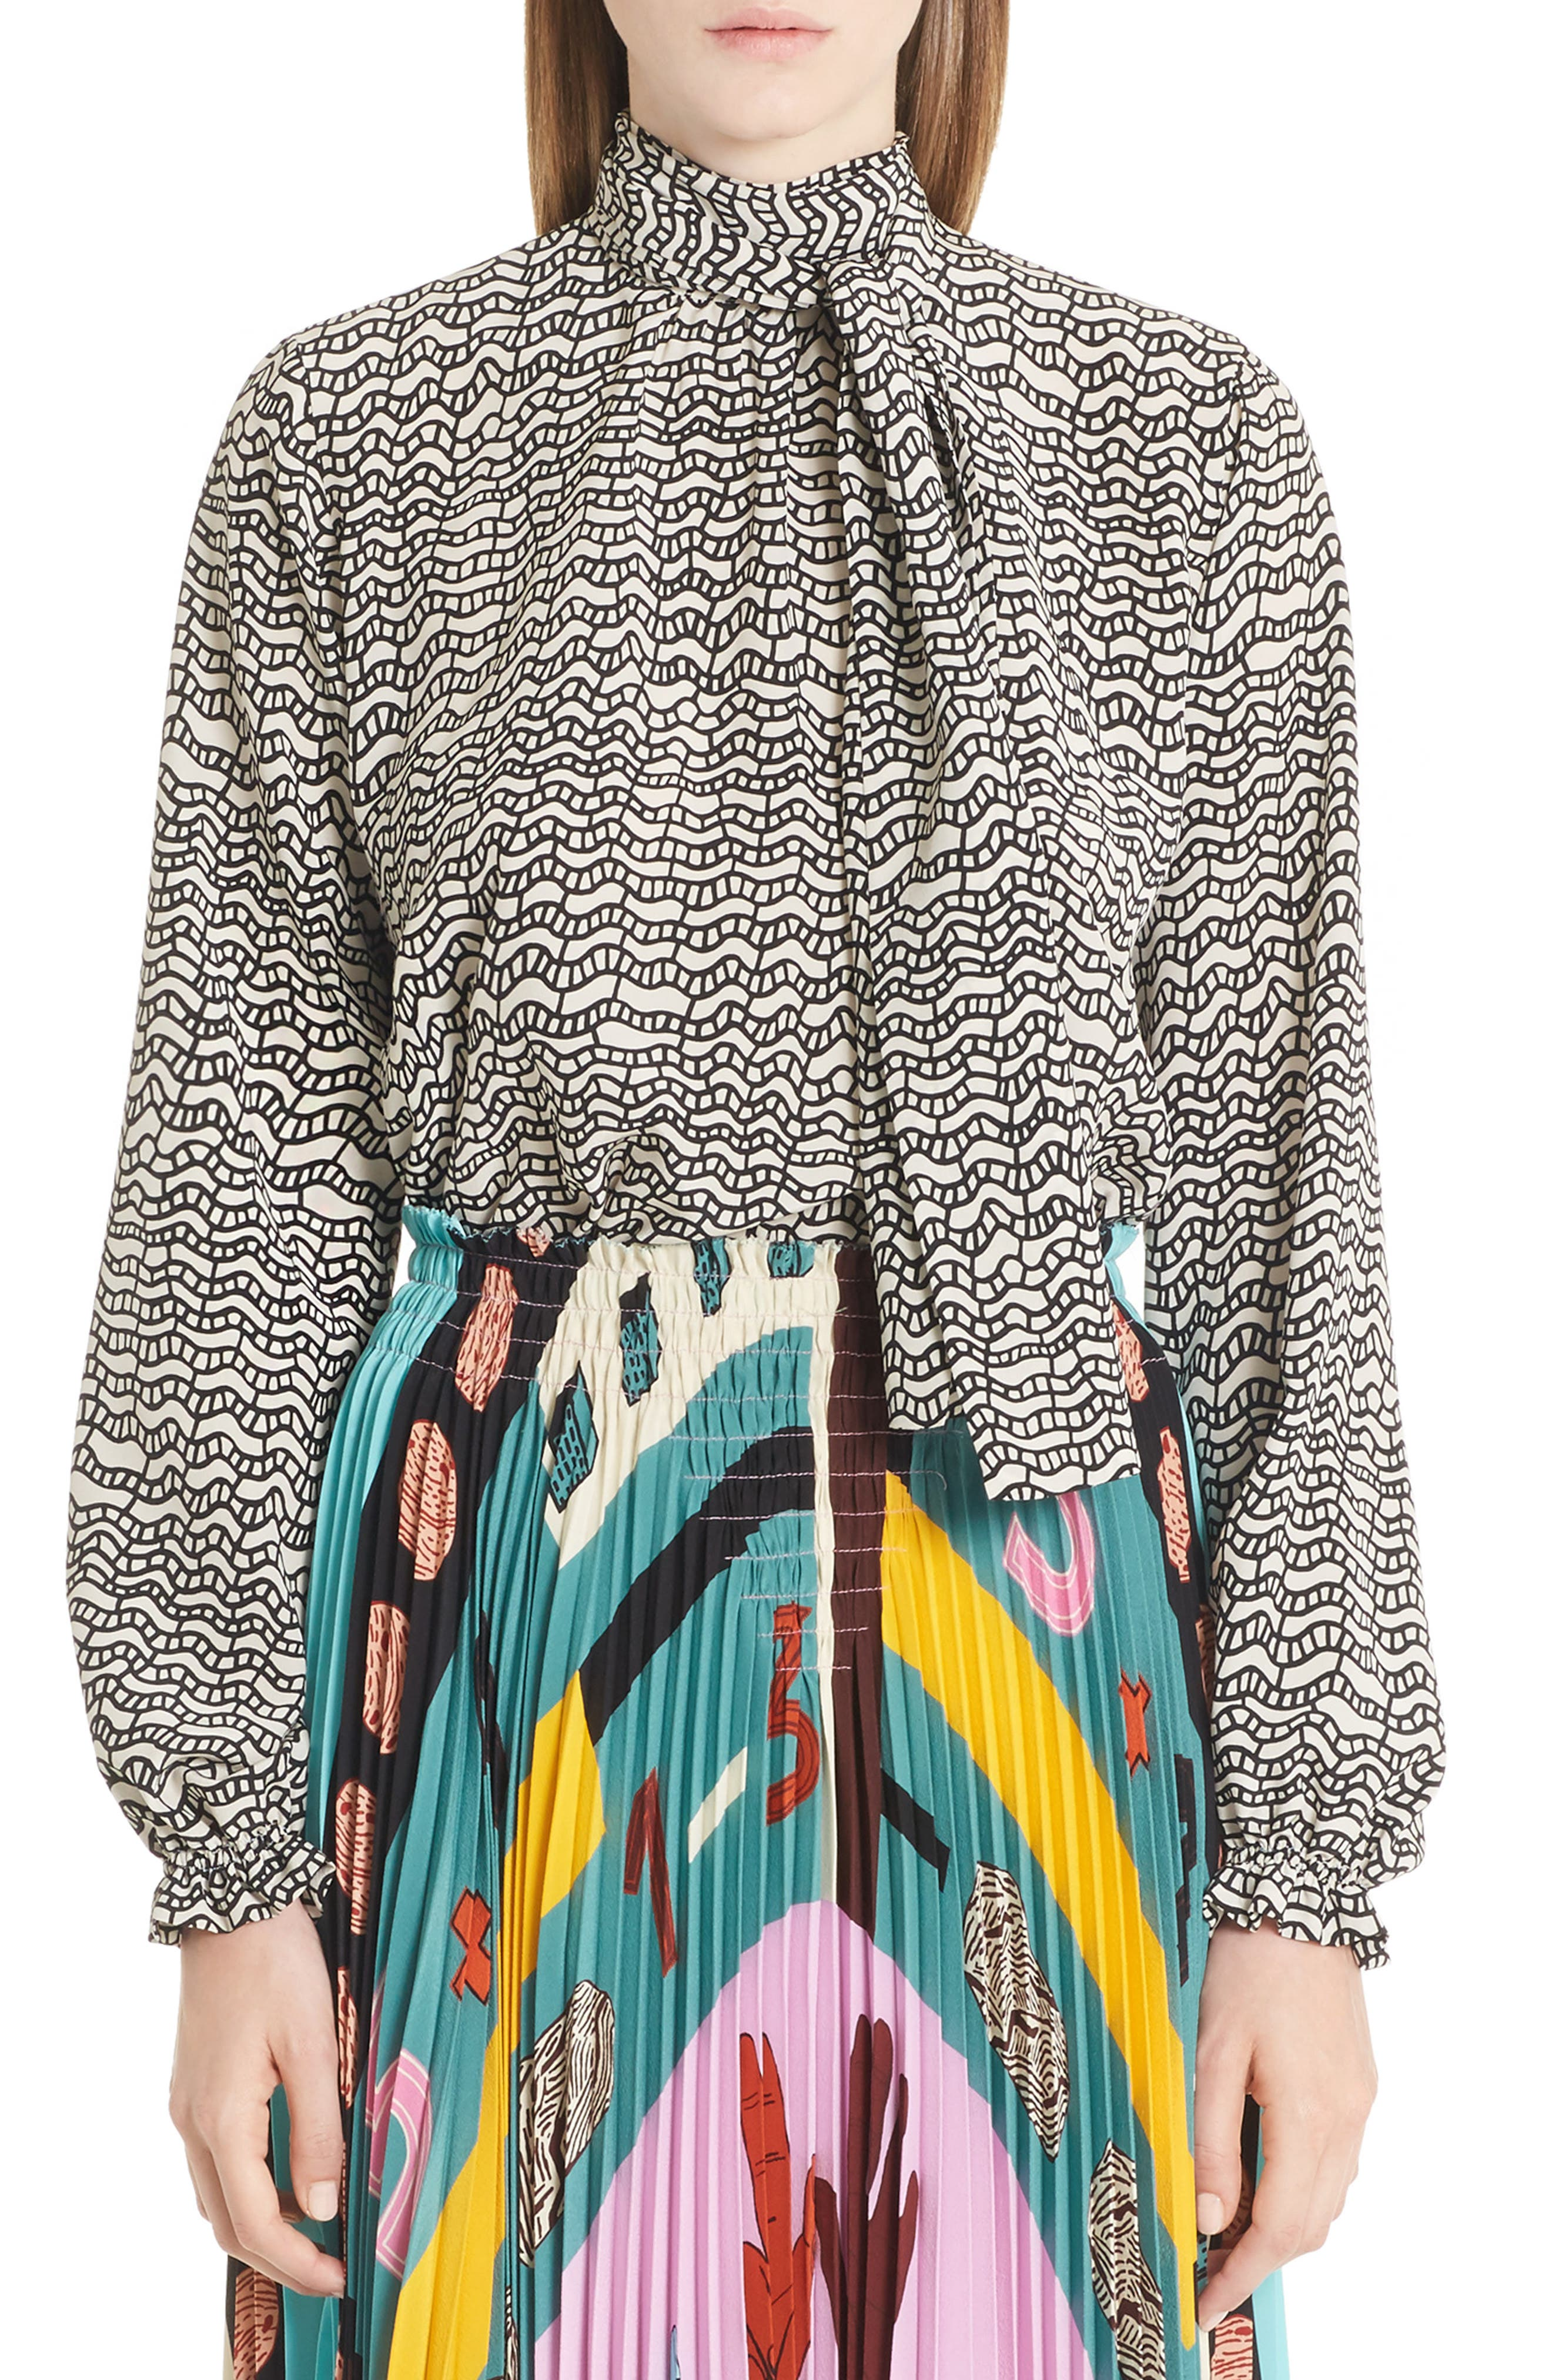 Graphic Print Silk Crêpe de Chine Blouse,                             Main thumbnail 1, color,                             001